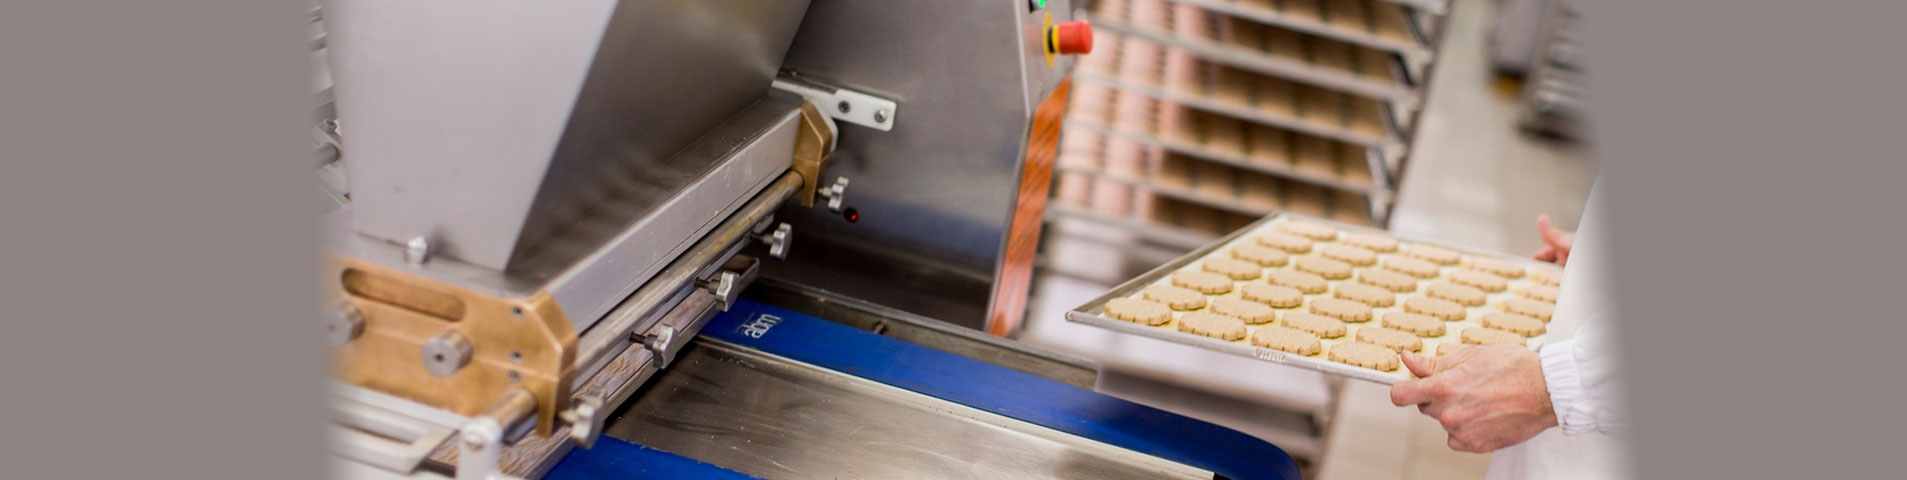 Shift Scheduling Software for Food Processing, Food